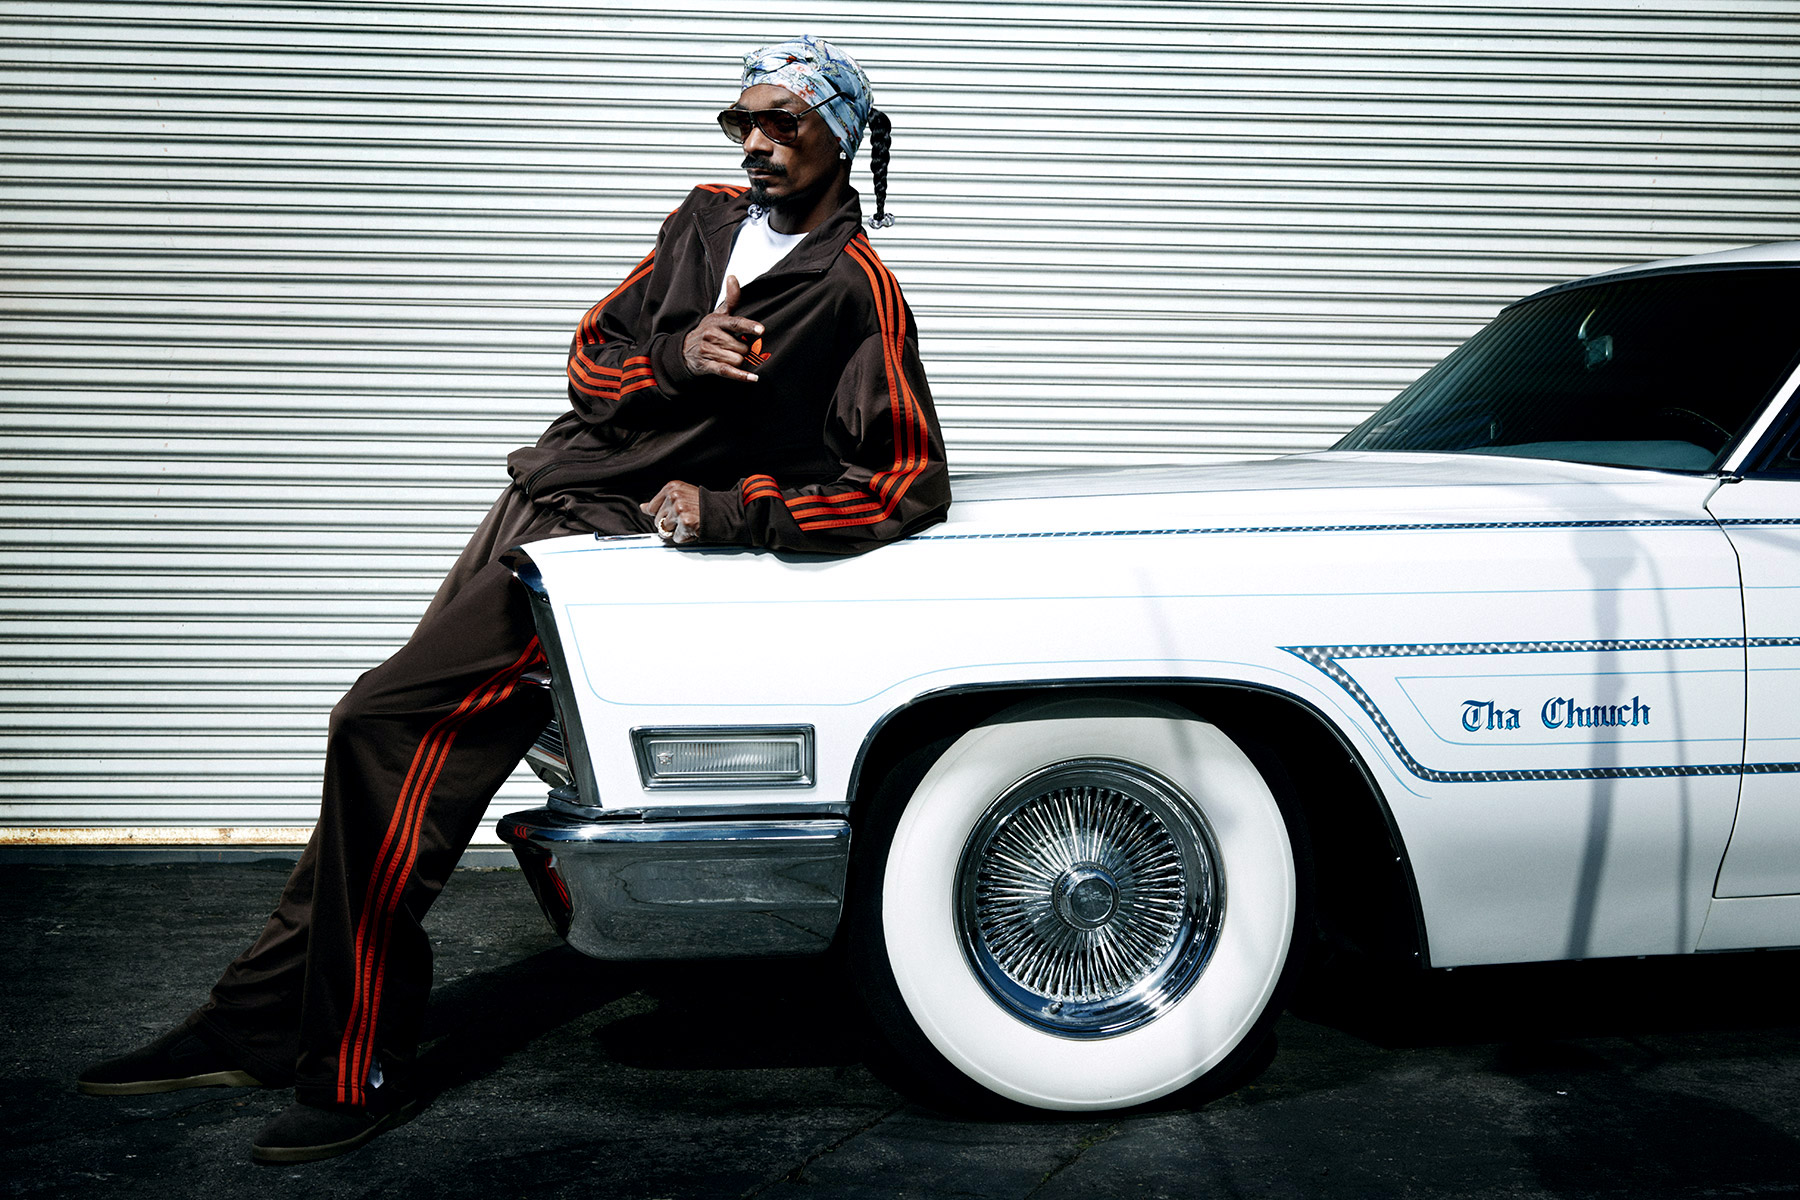 Hip-Hop artist, rapper Snoop Dogg photographed by Scott Council